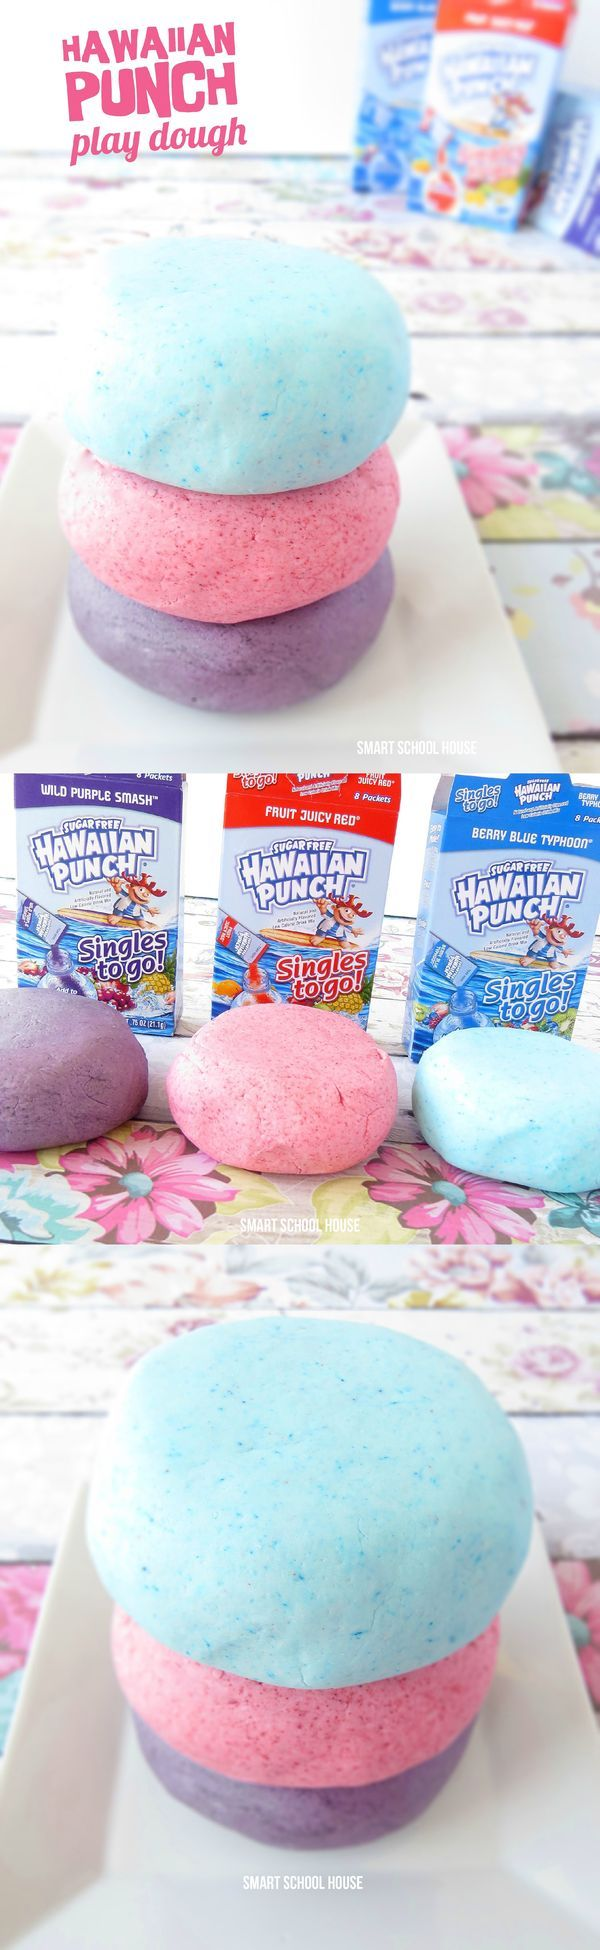 Hawaiian Punch EDIBLE play dough! A super soft, squishy, and yummy smelling DIY edible play dough recipe.